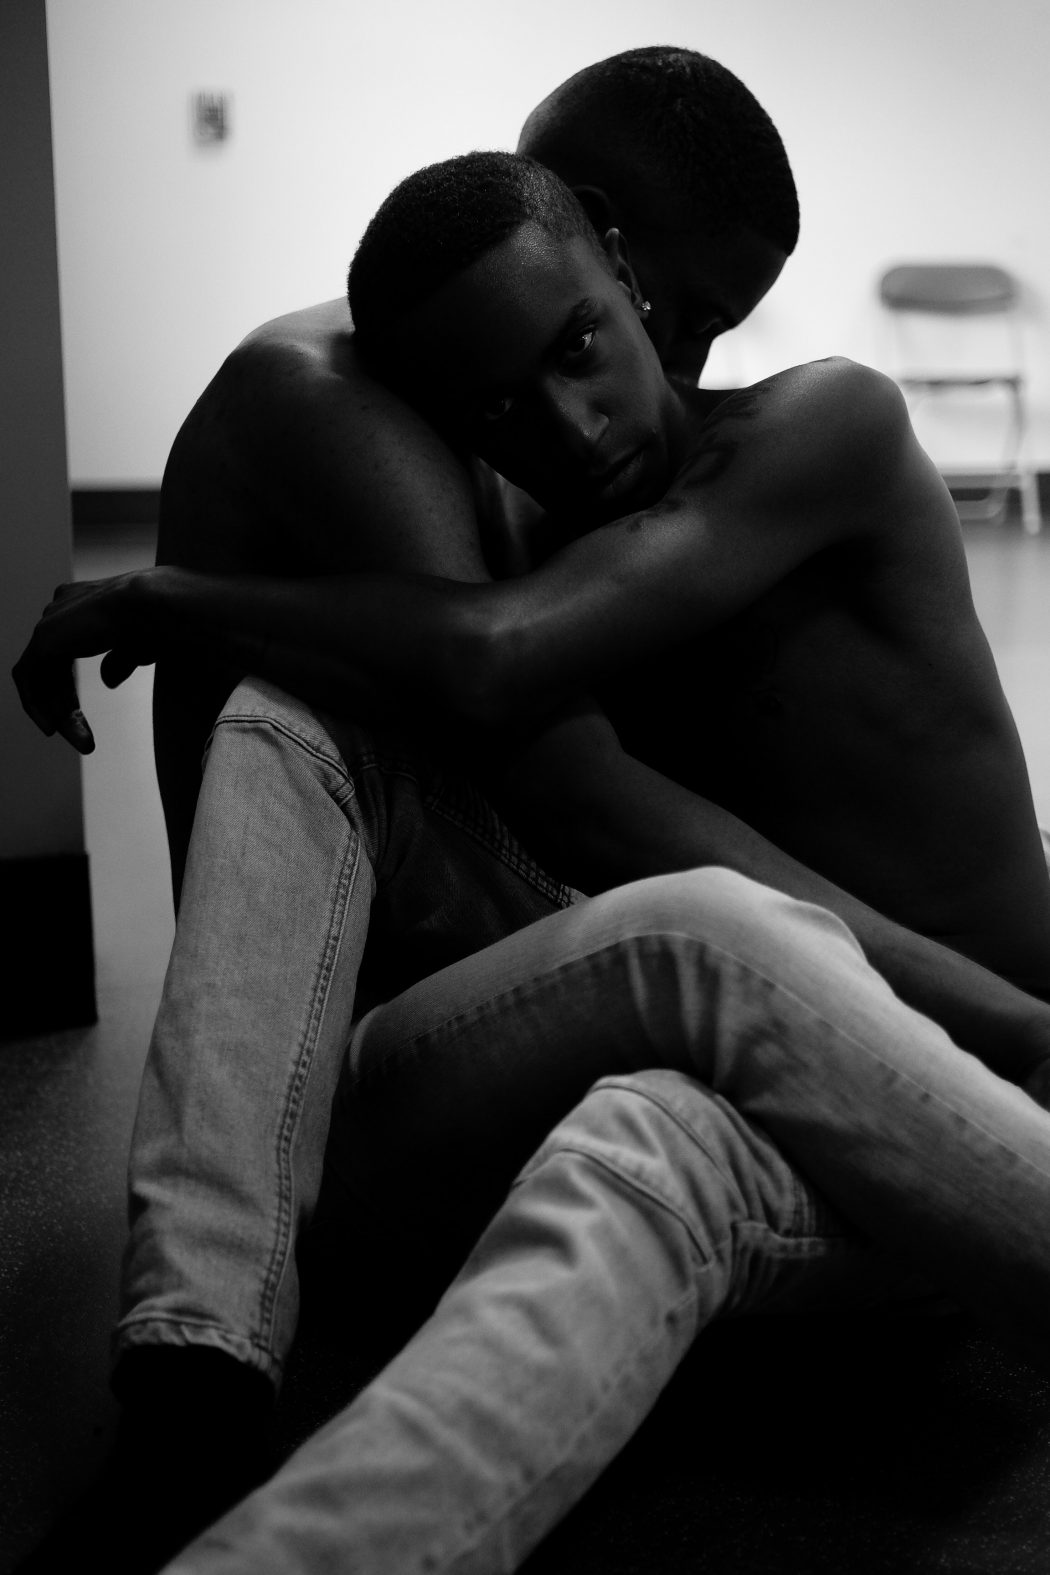 affection-black-and-white-embrace-1149361